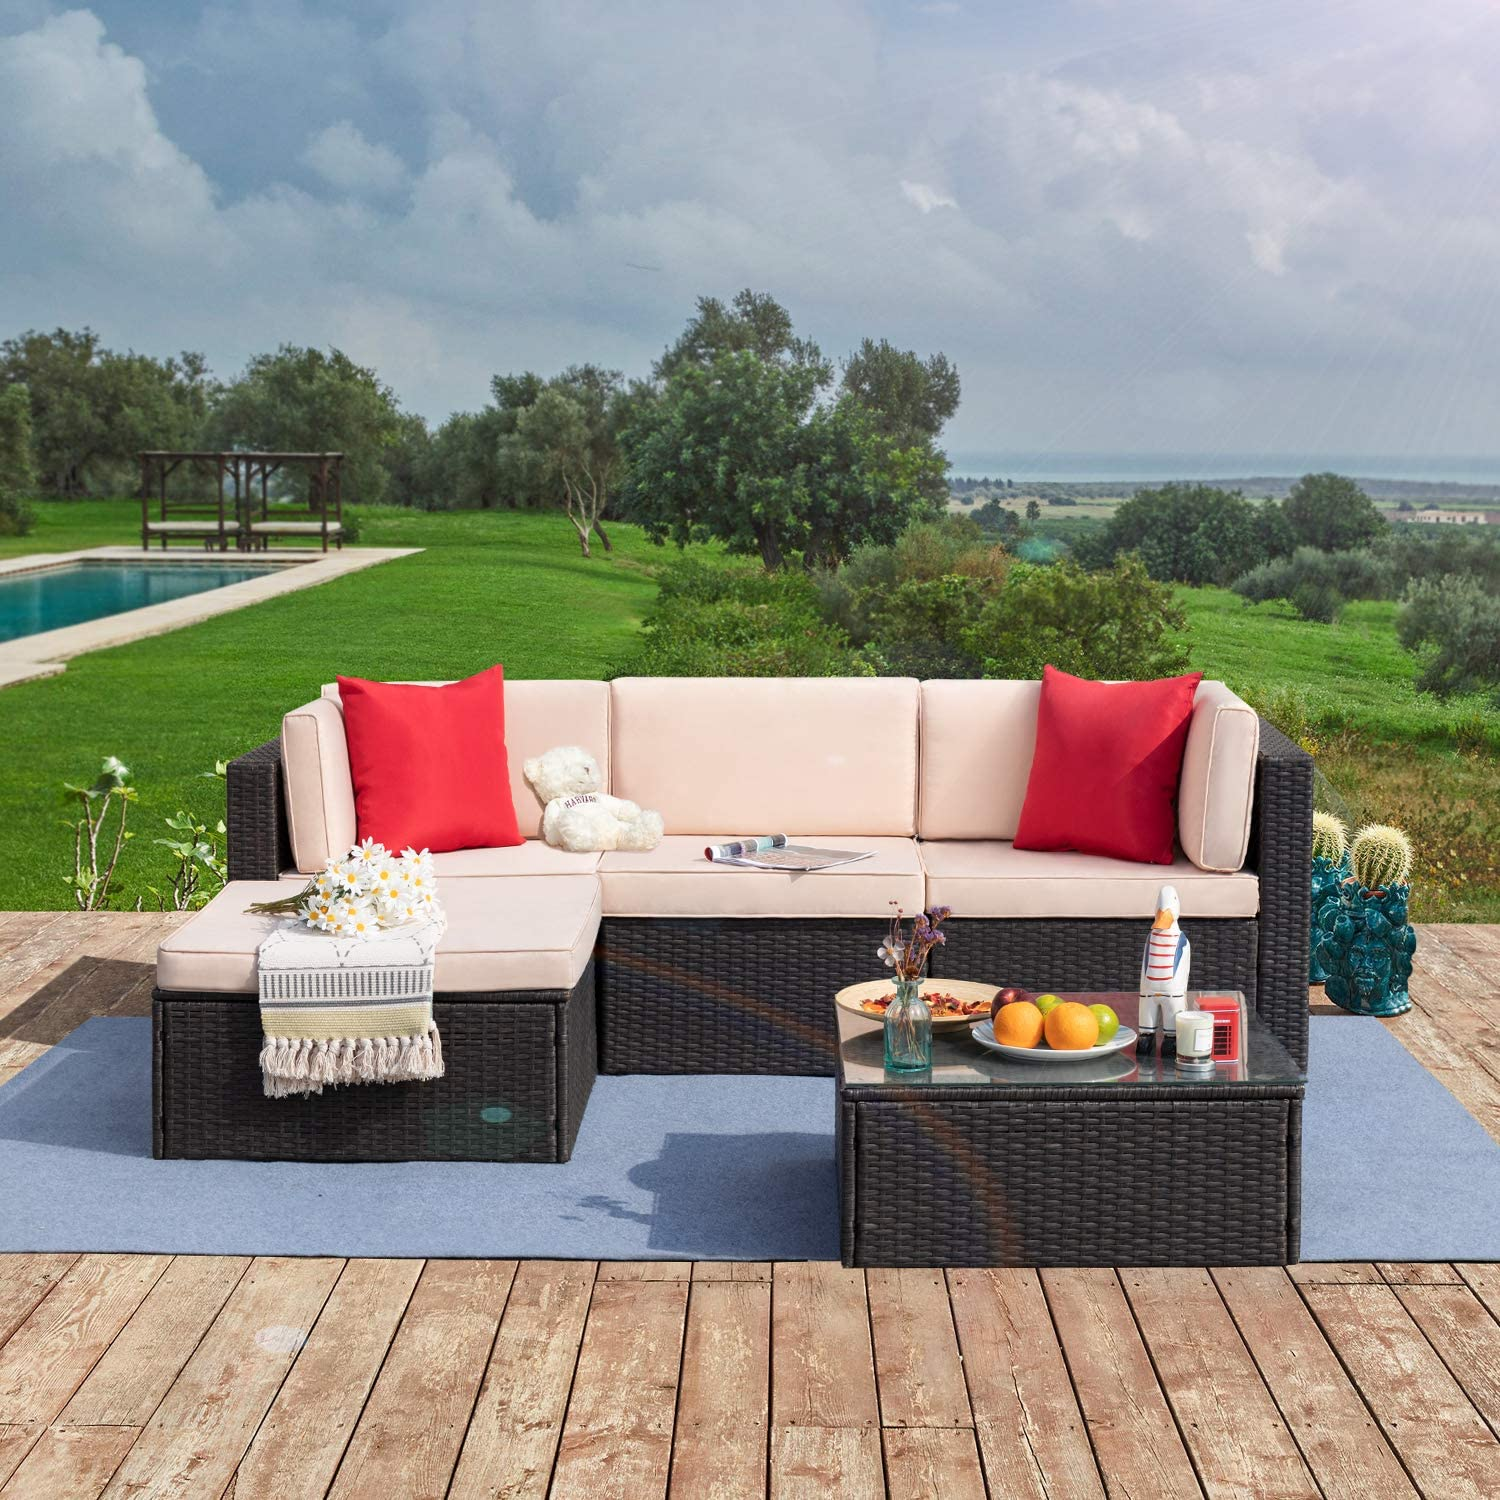 Tuoze 8 Pieces Patio Furniture Sectional Set Outdoor PE Rattan Wicker Lawn  Conversation Sets Cushioned Garden Sofa Set with Glass Coffee Table (Beige)